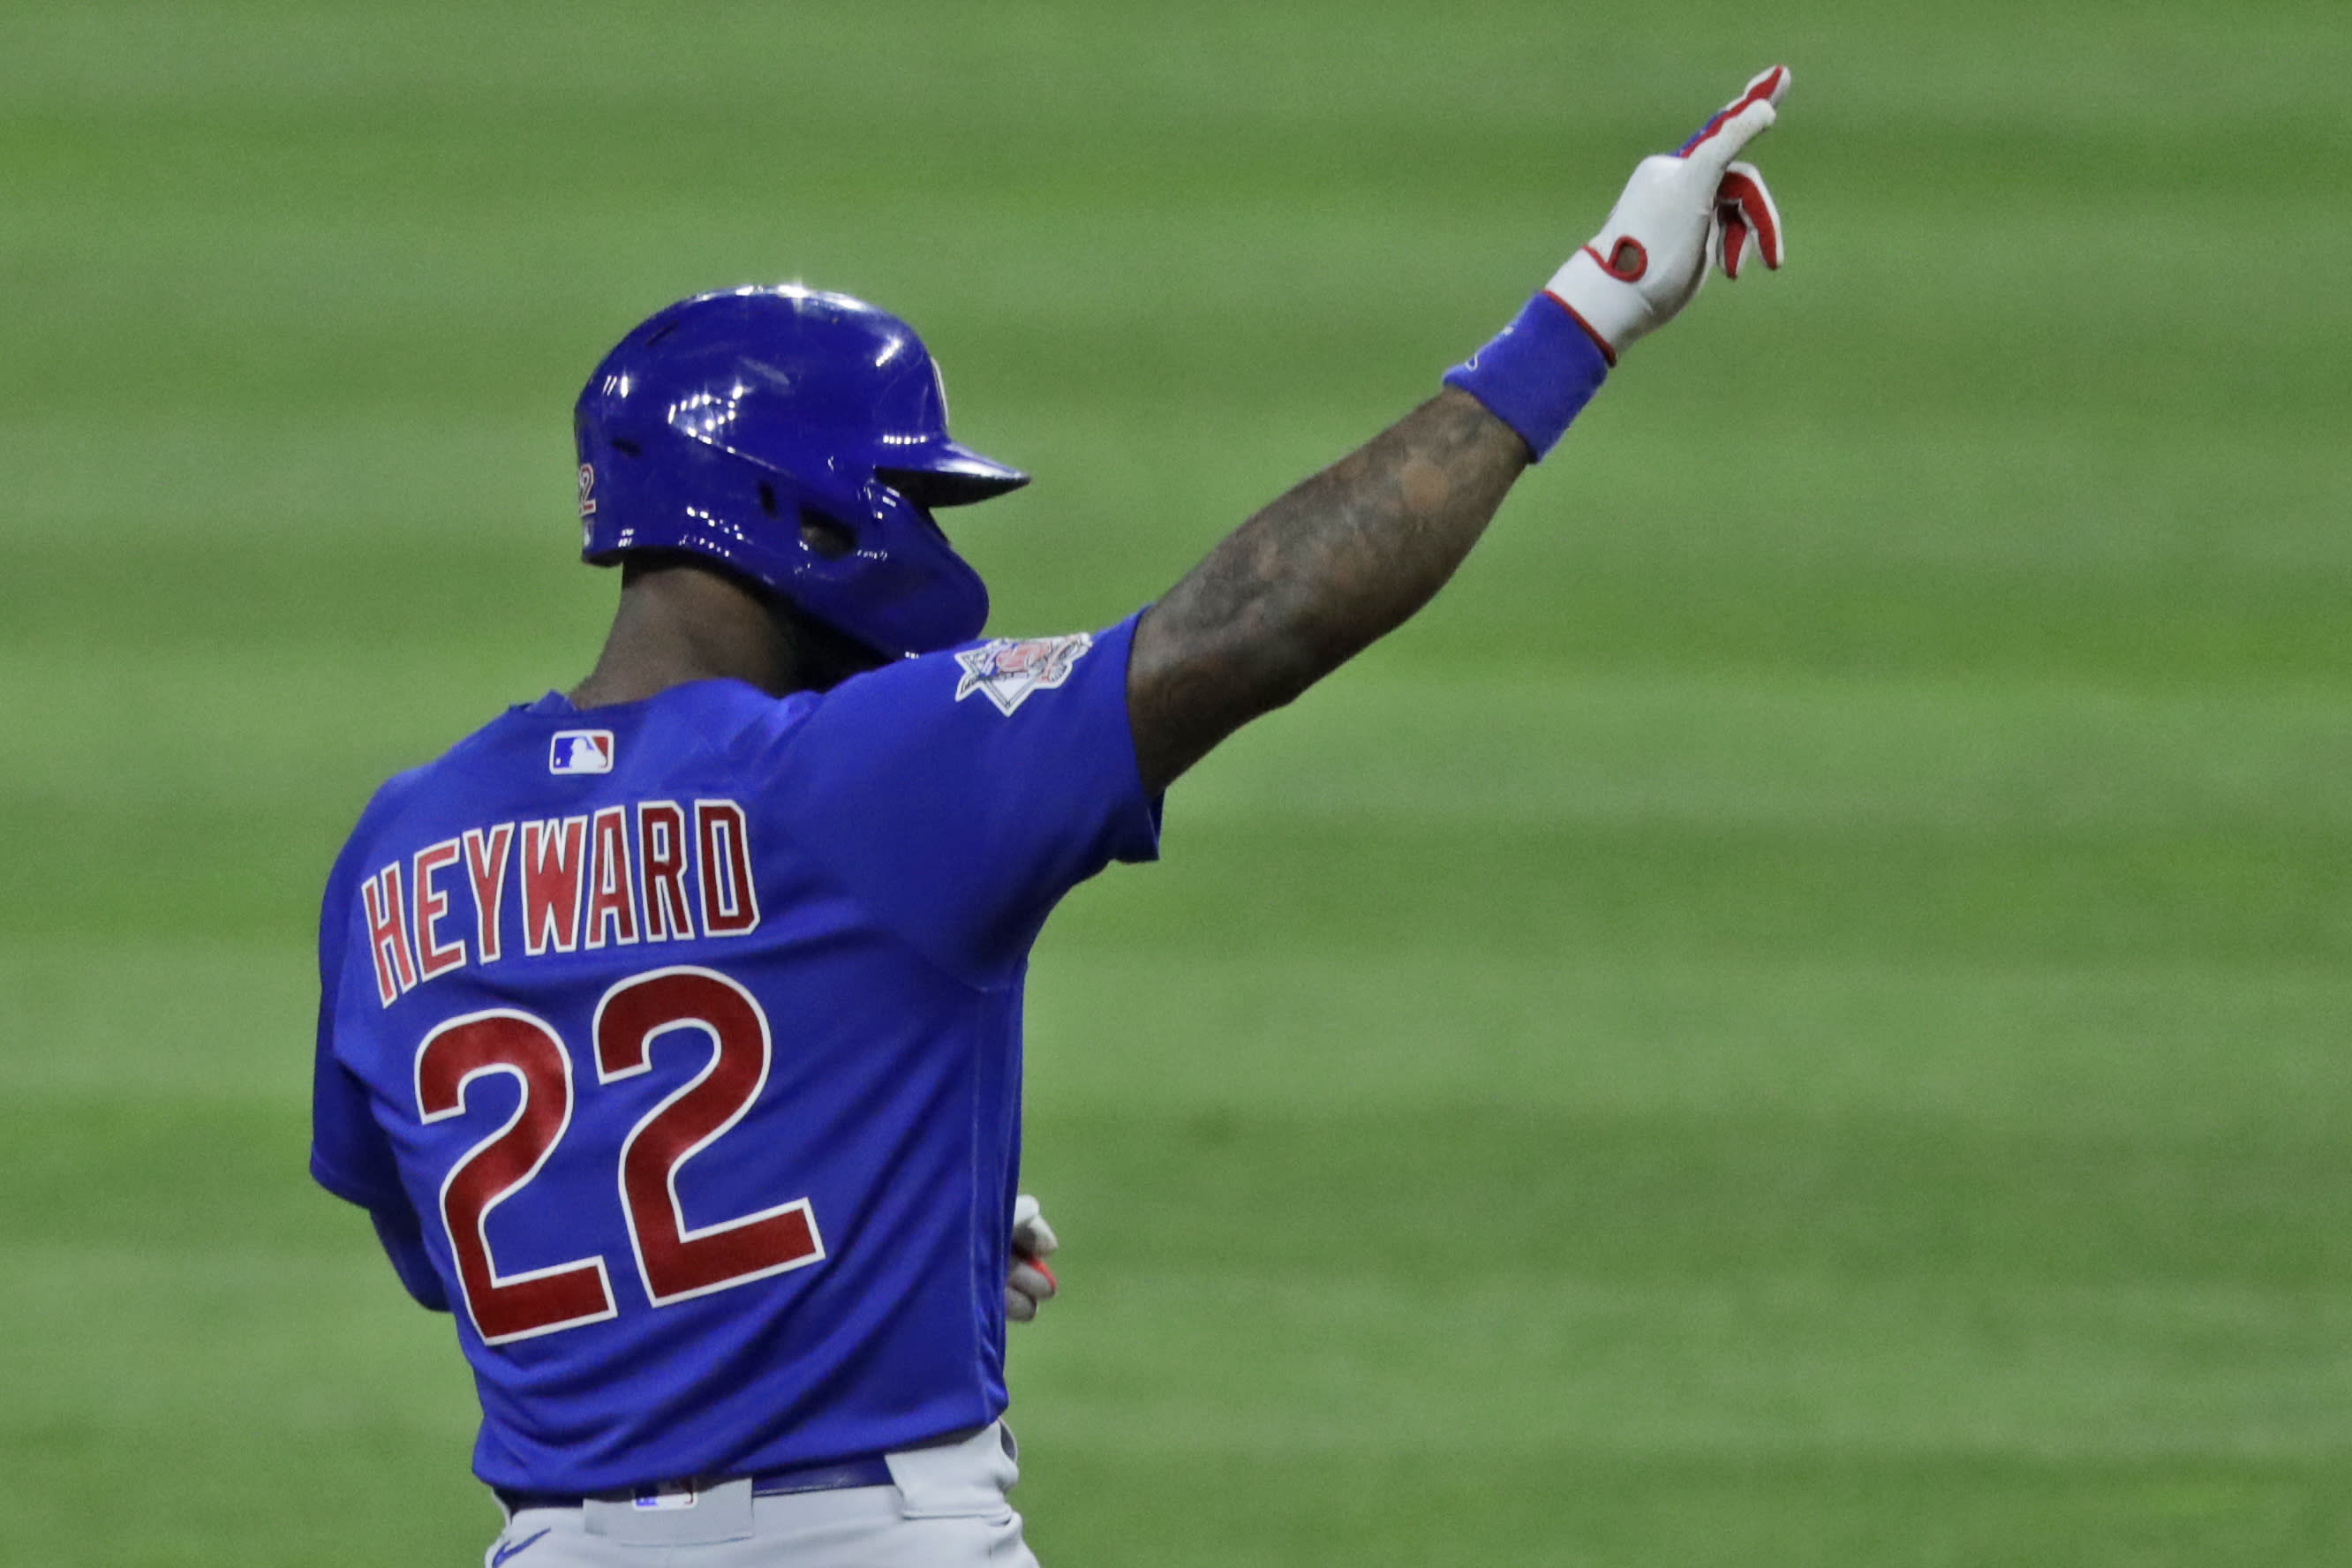 Chicago Cubs' Jason Heyward points toward the dugout after hitting a one-run double in the ninth inning in a baseball game against the Cleveland Indians, Wednesday, Aug. 12, 2020, in Cleveland. (AP Photo/Tony Dejak)